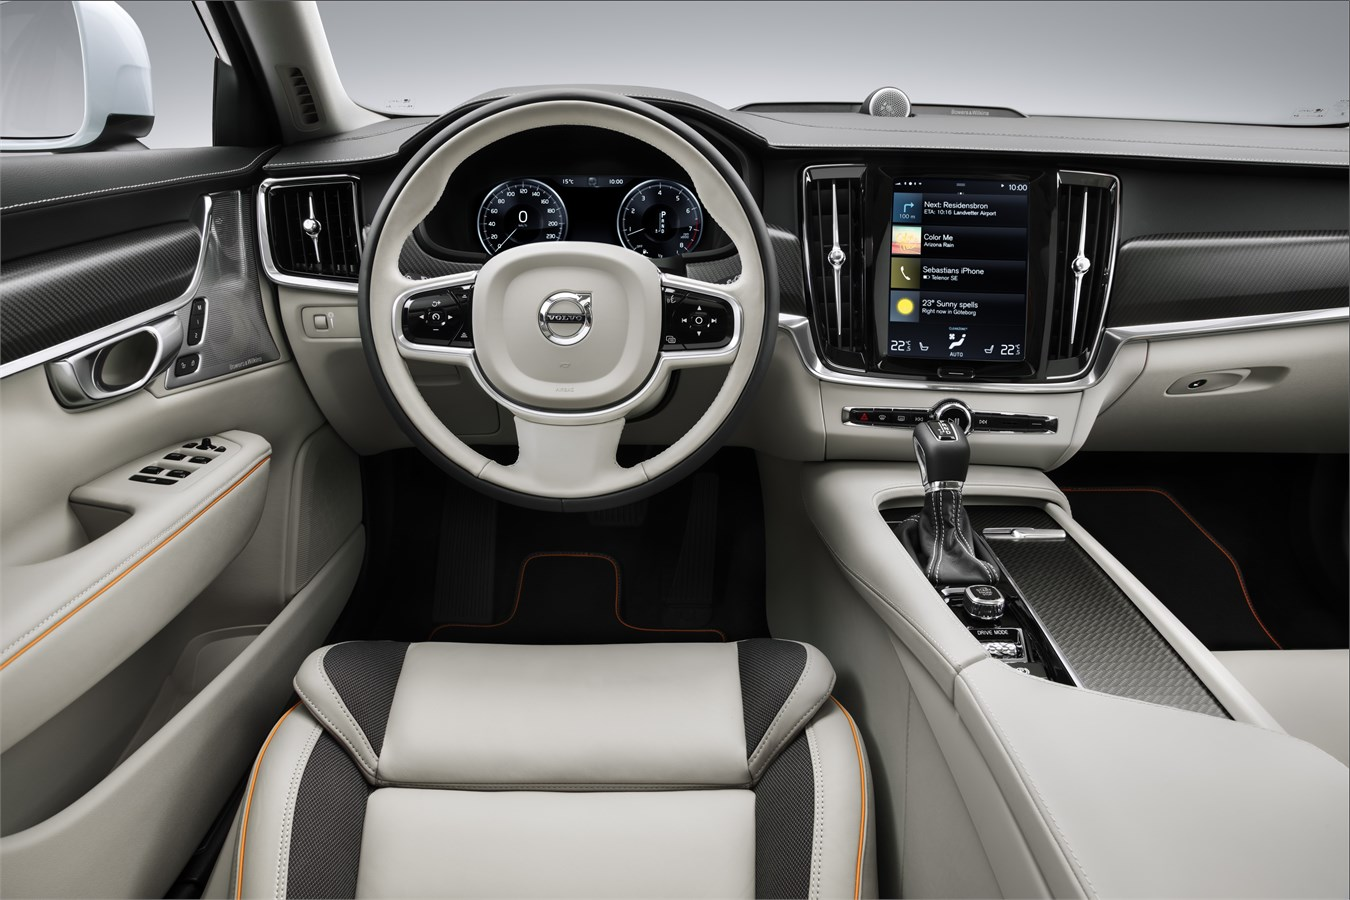 https://www.media.volvocars.com/image/low/216476/1_3/5